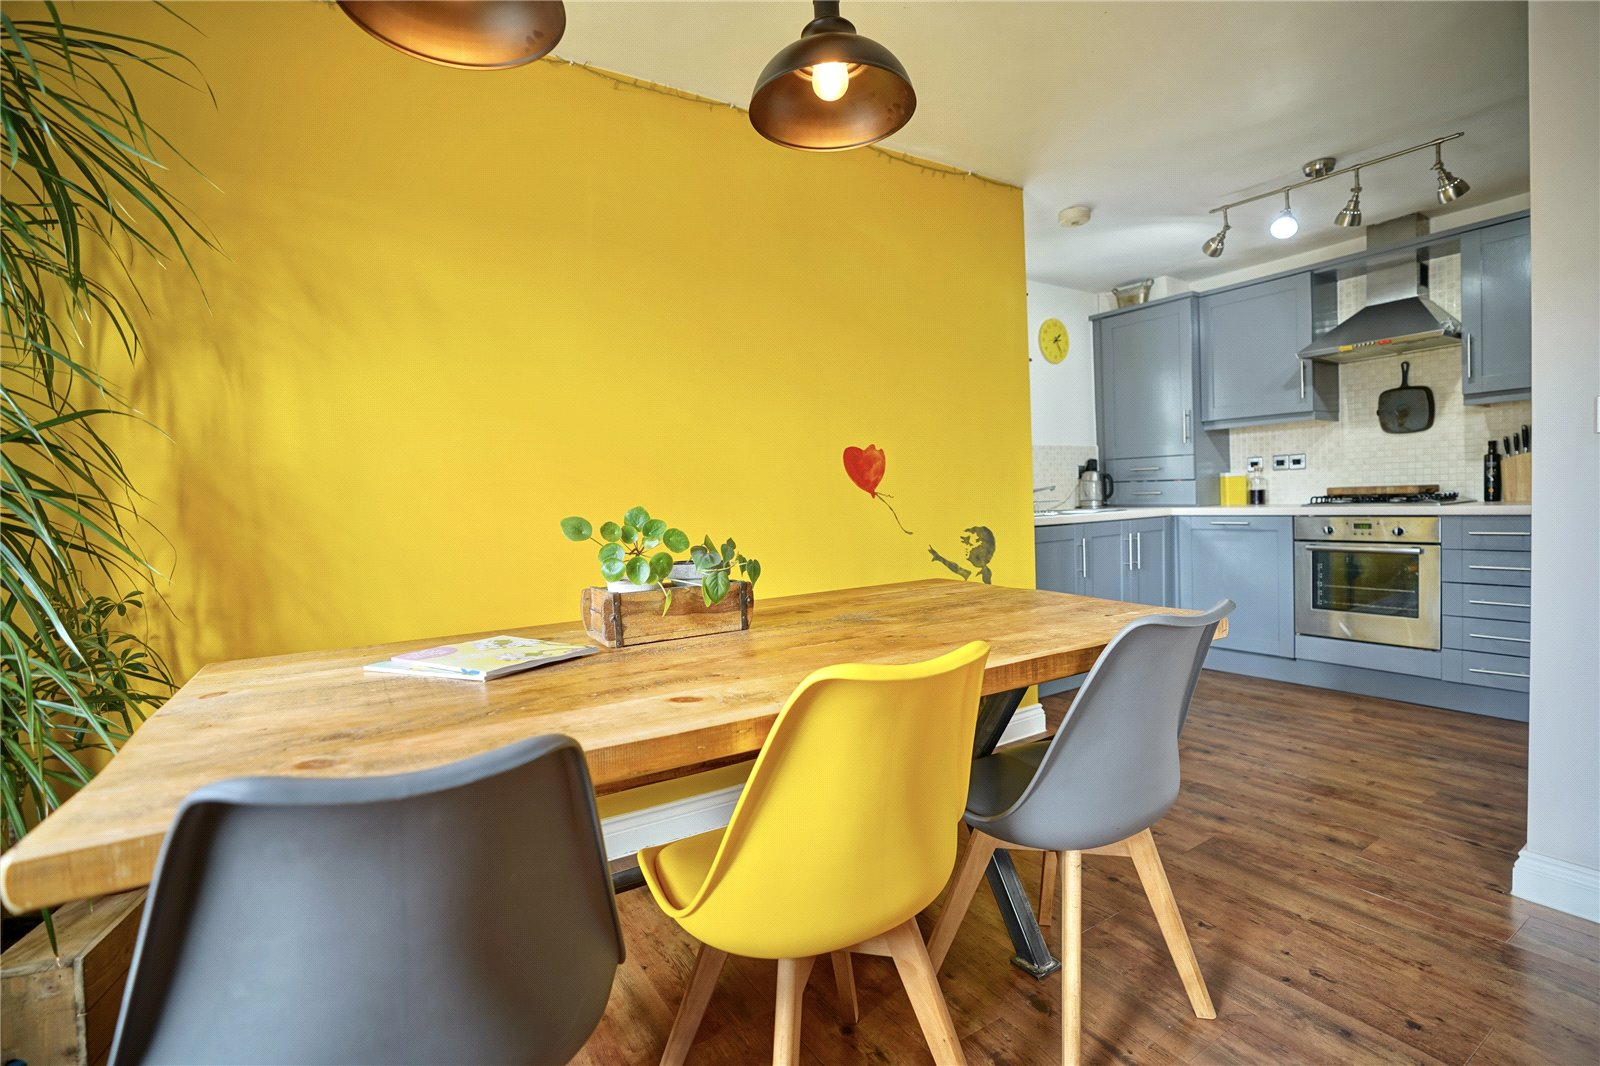 2 bed apartment for sale in St. Ives, PE27 5QL 3